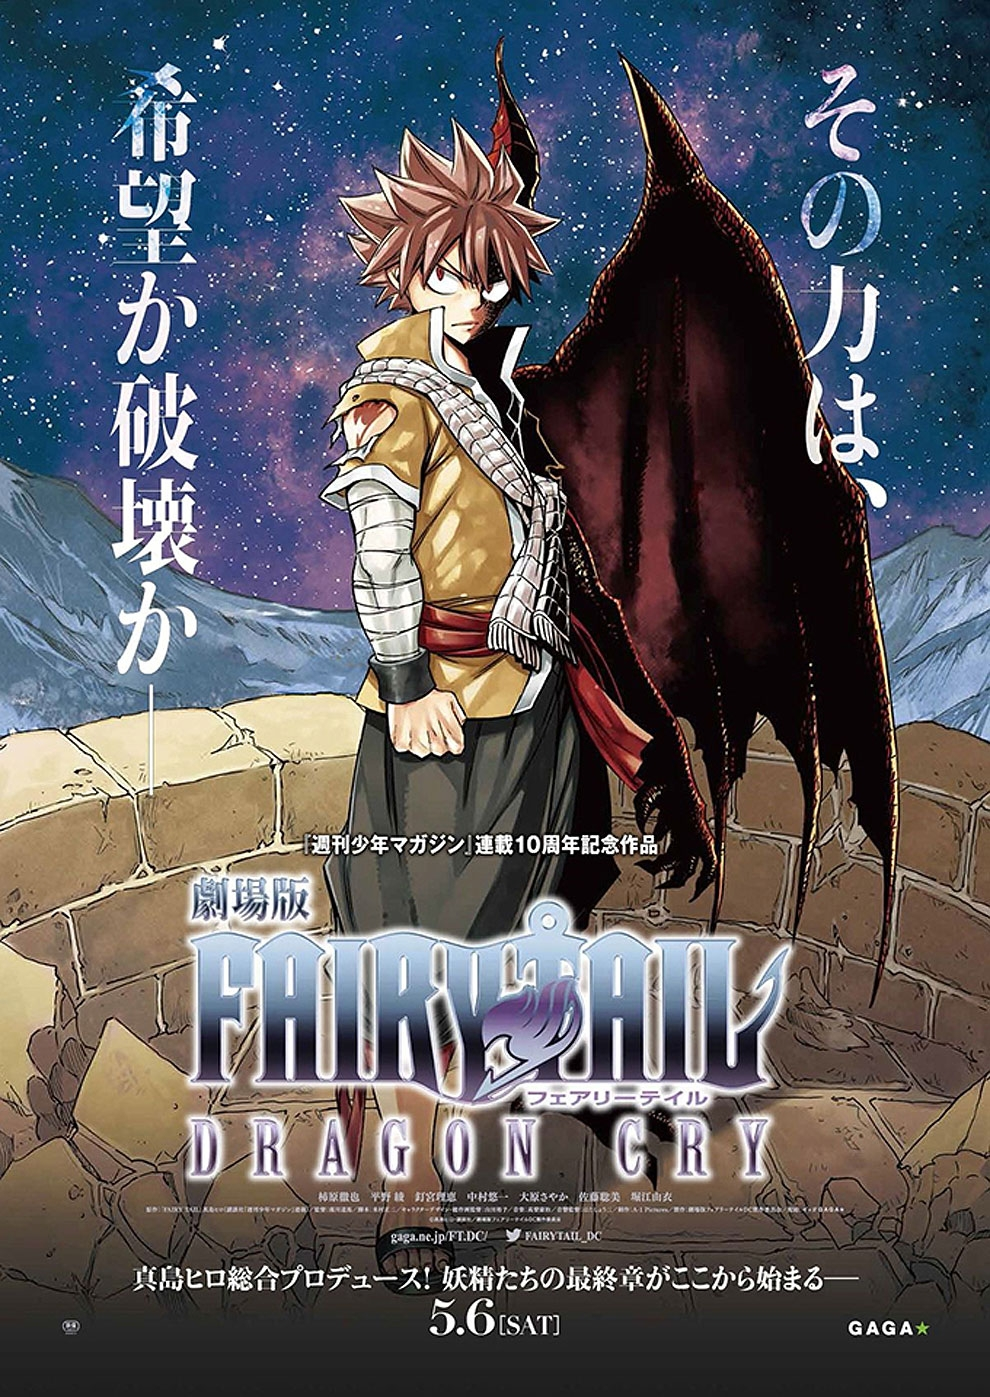 Anime Night: Fairy Tail - Dragon Cry (Poster)